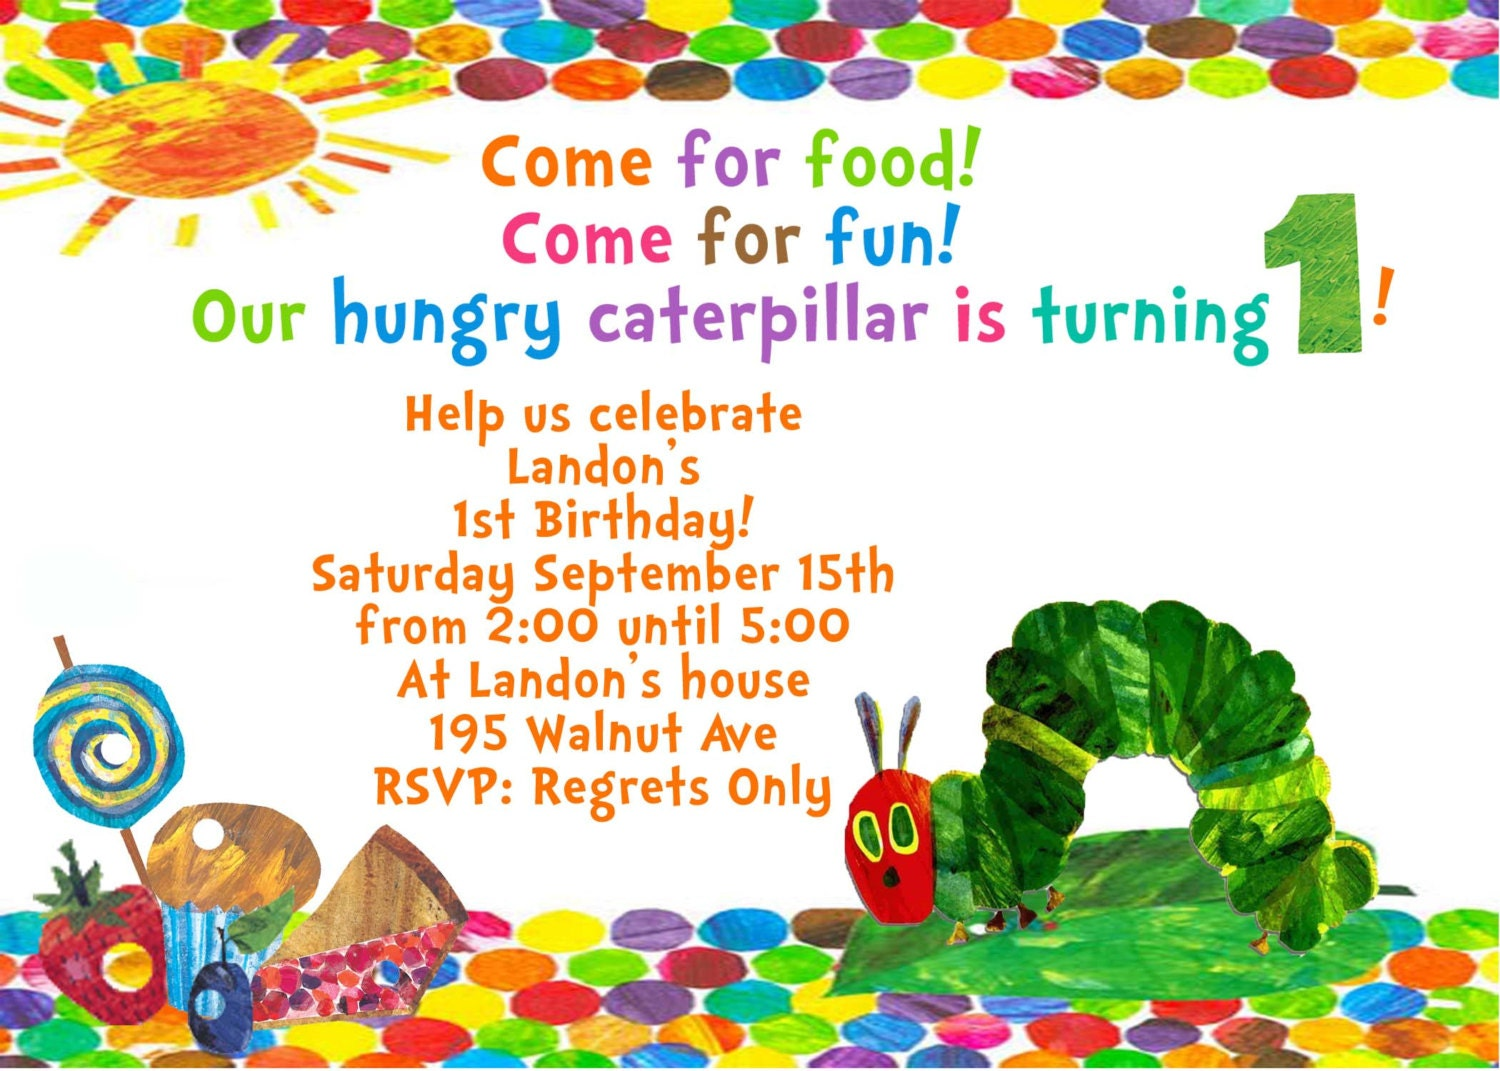 best ideas about hungry caterpillar invitations 17 best ideas about hungry caterpillar invitations hungry caterpillar party 1st birthday party themes and hungry caterpillar cake